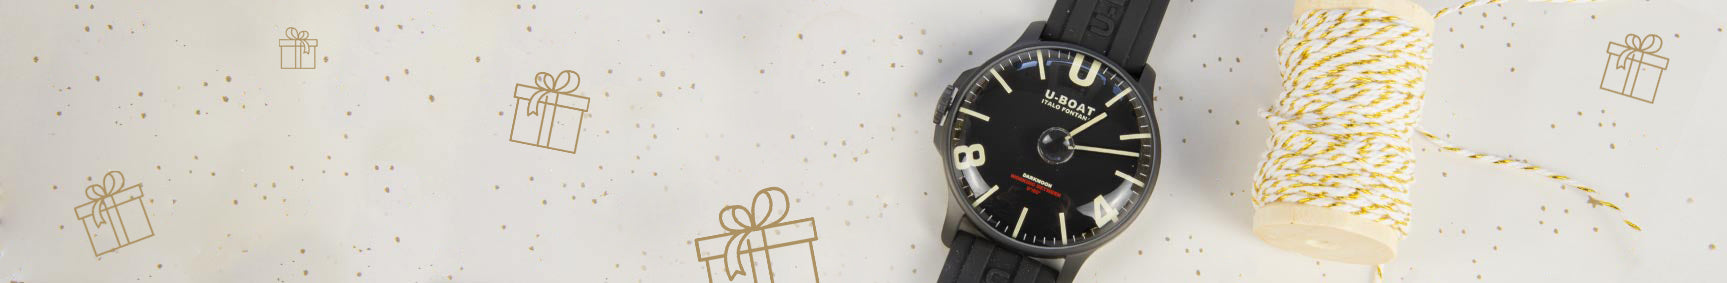 Gifts | Men Watches